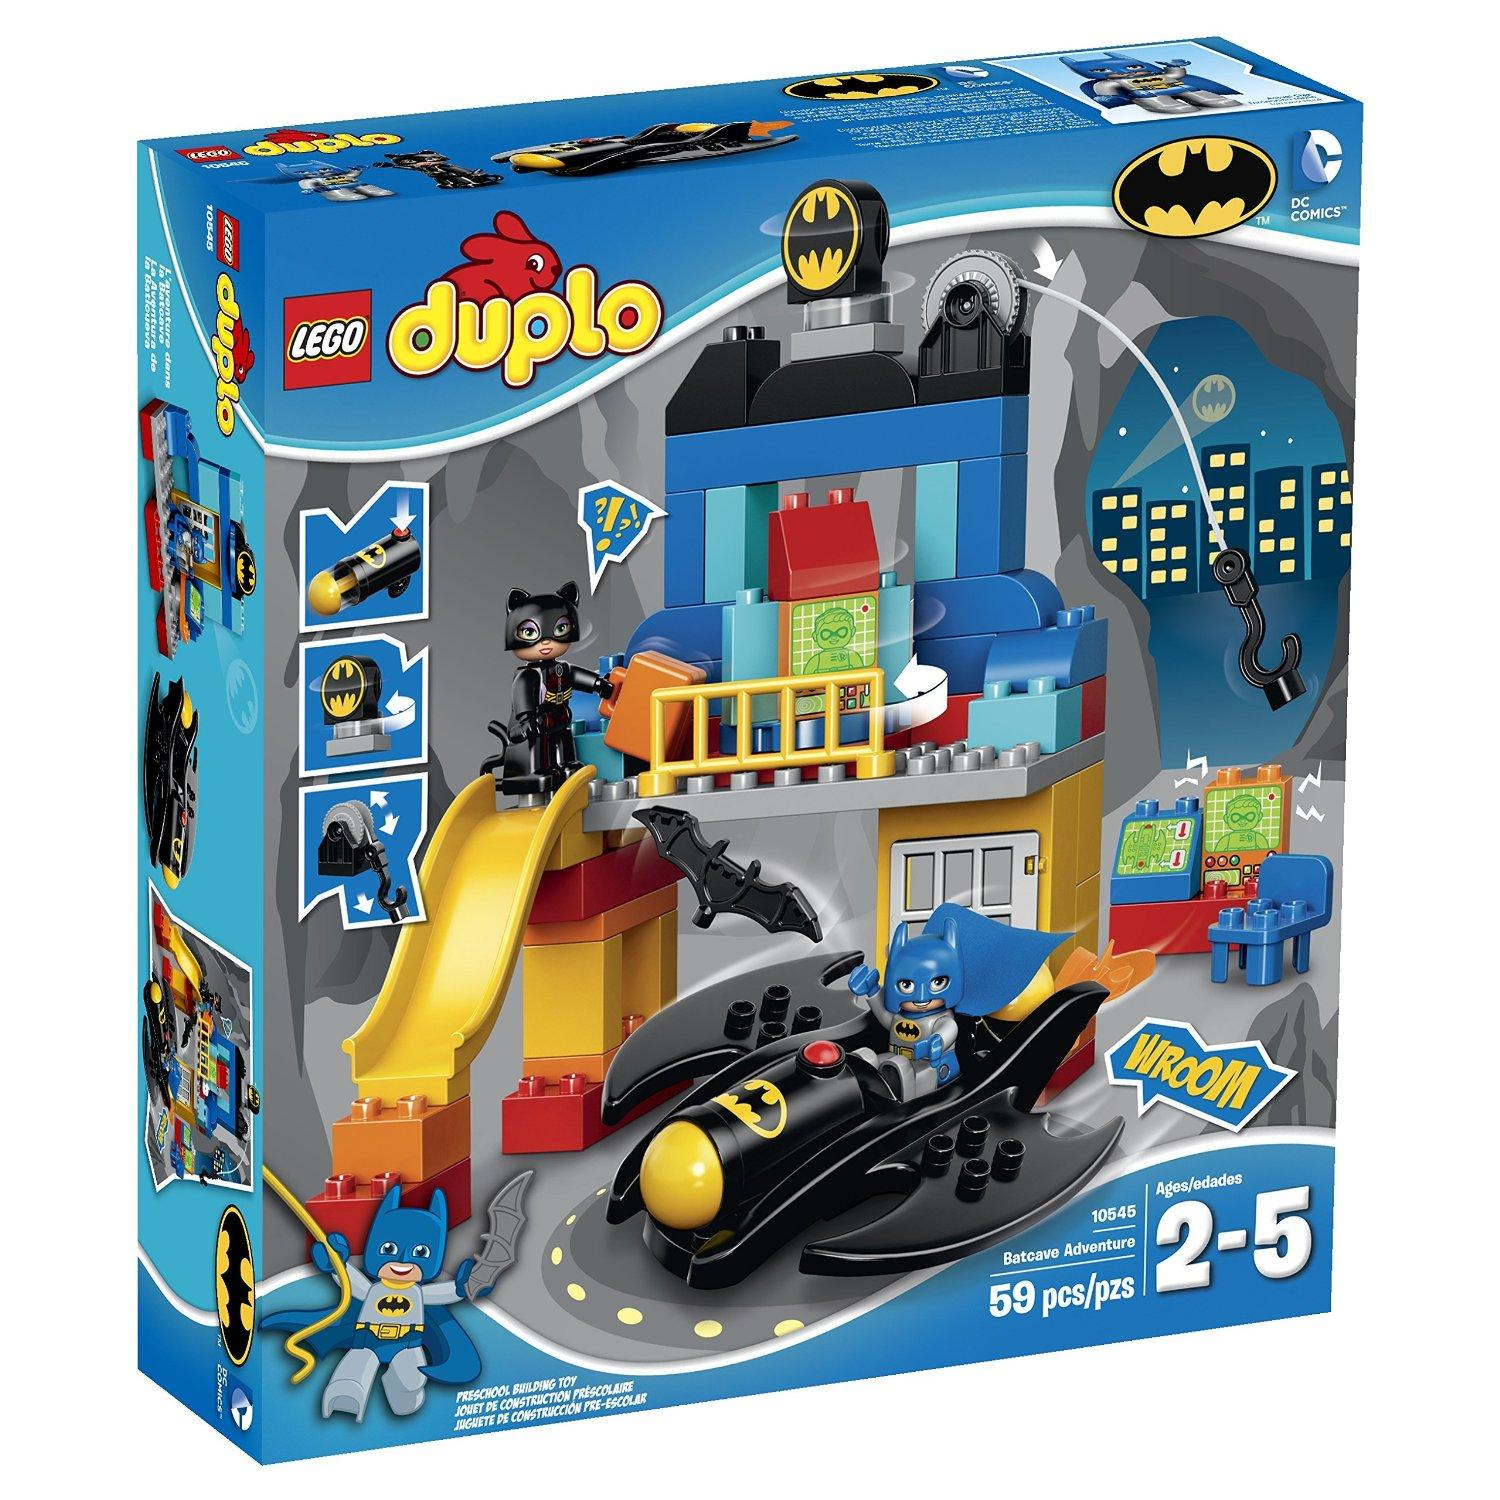 Only for Prime Members! LEGO Super Heroes Batcave Adventure